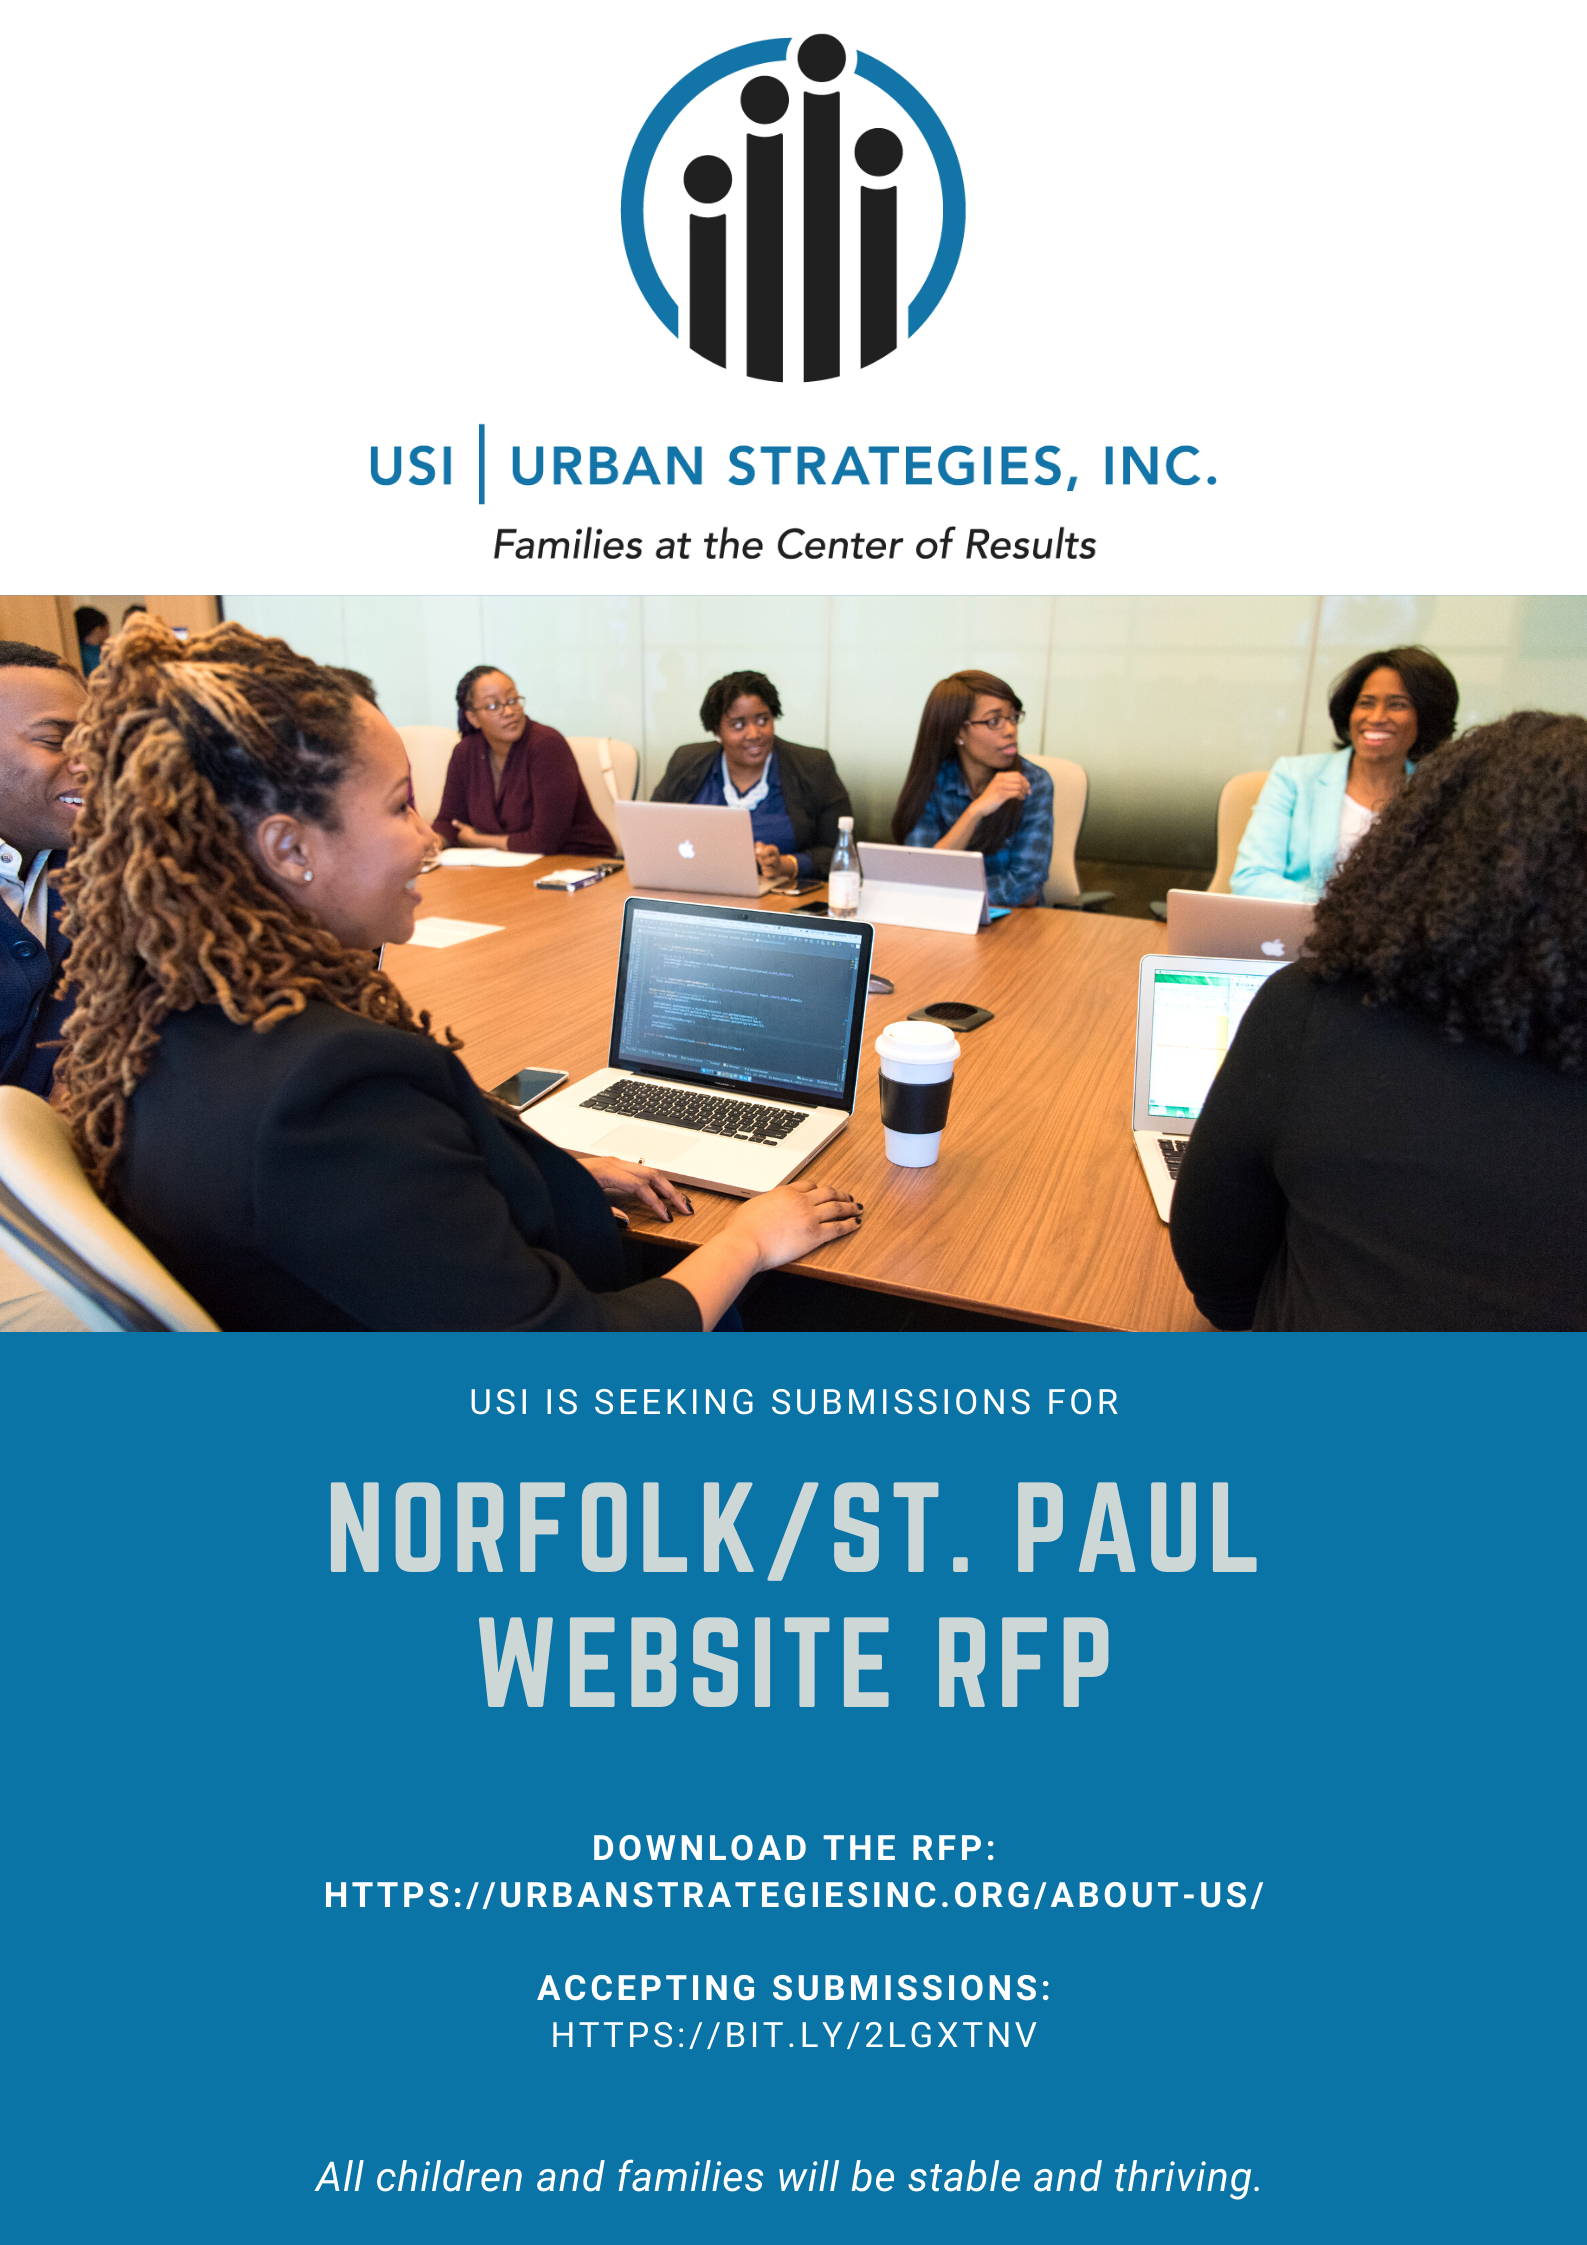 RFP: St. Paul Website